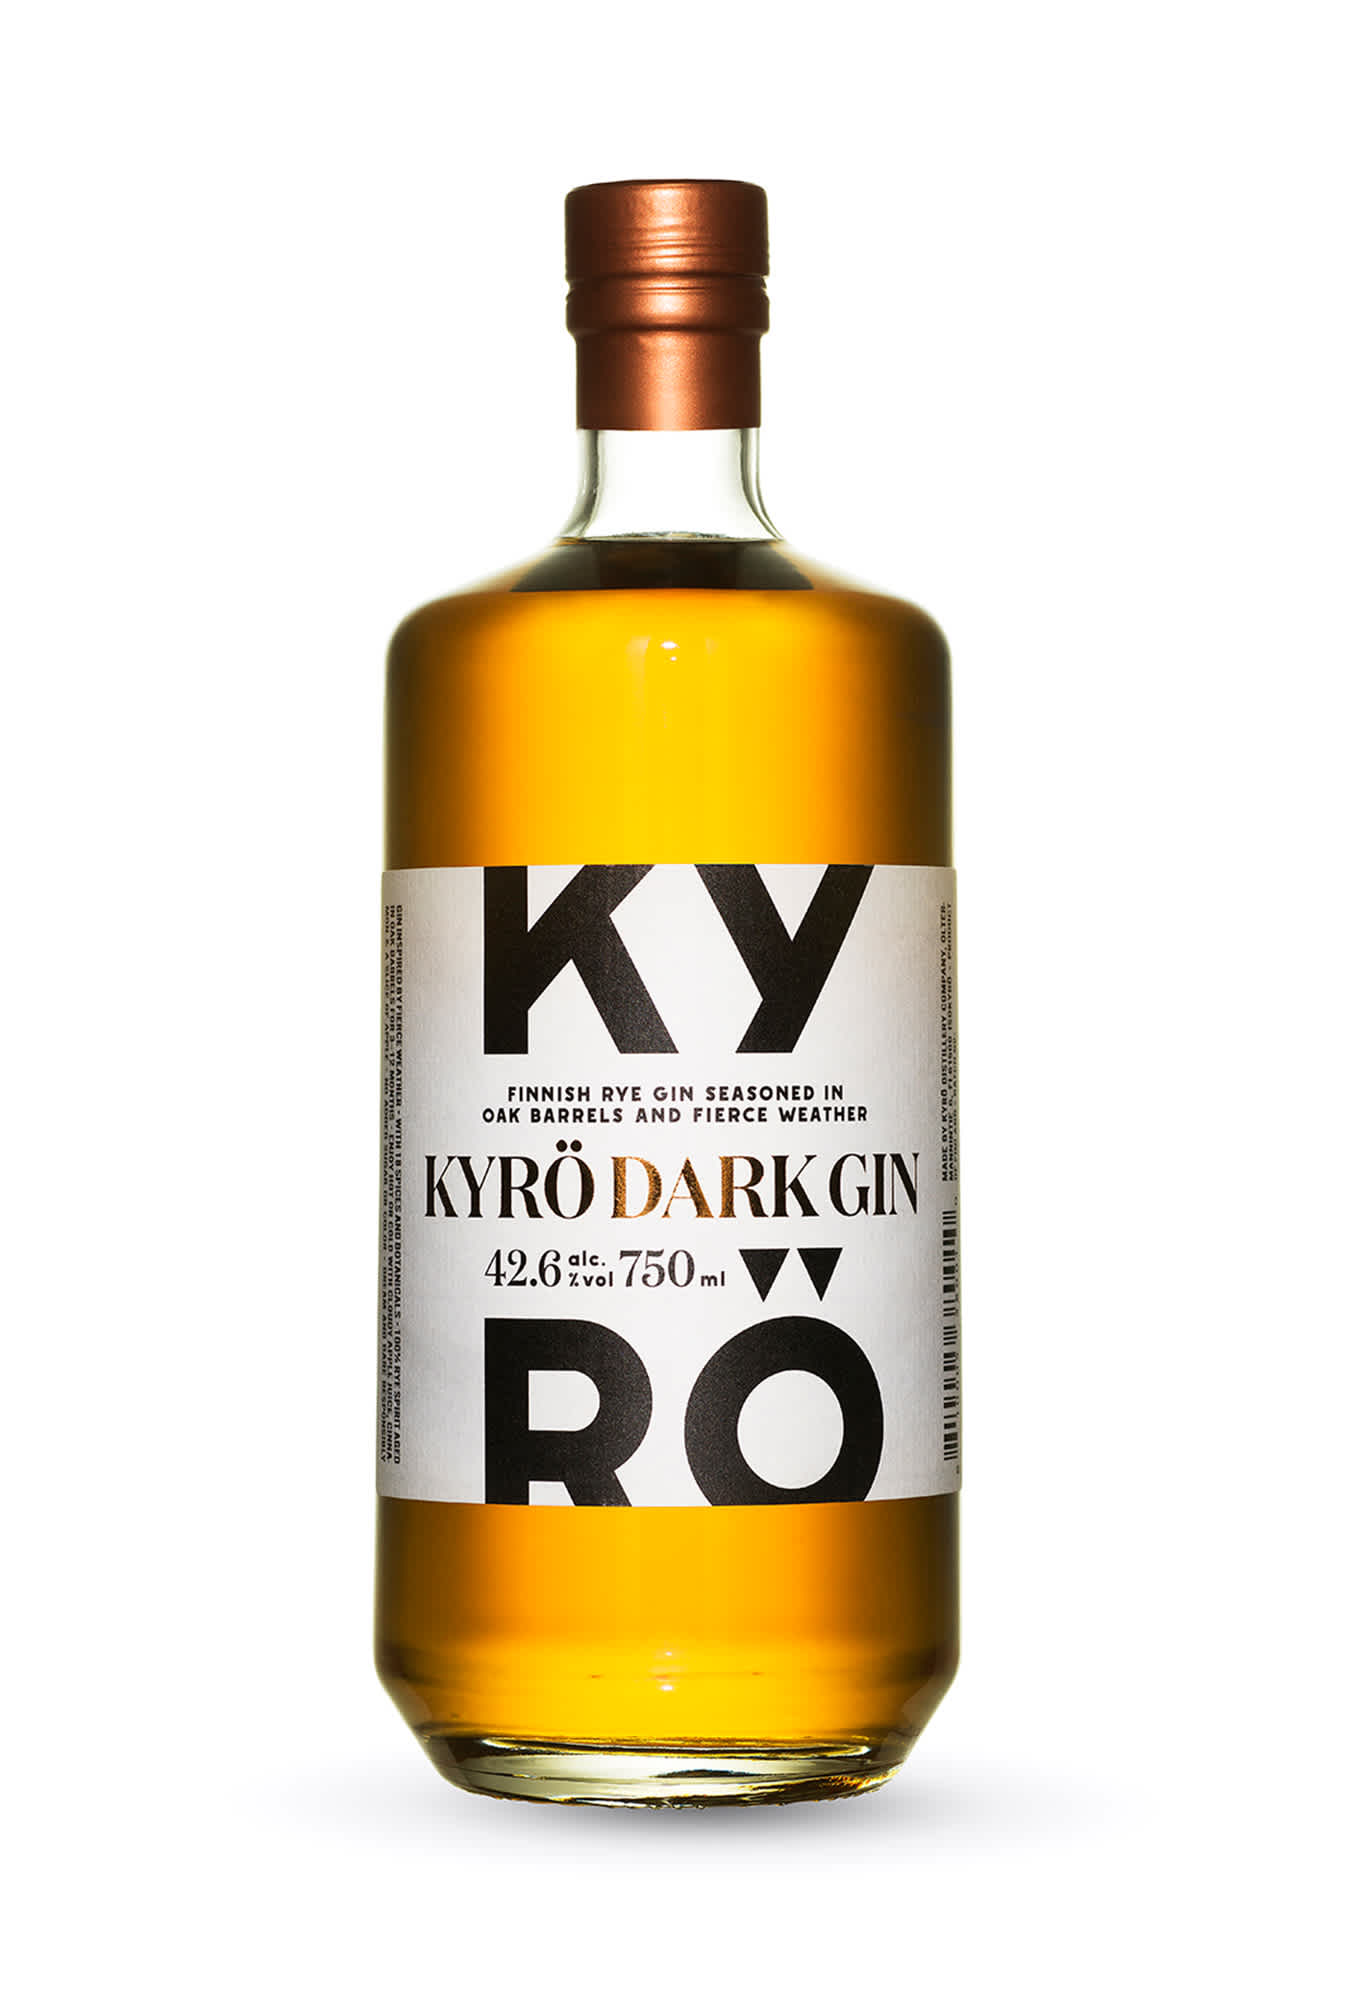 Product photo: 750 ml bottle of award-winning Kyrö Dark Gin. This barrel-aged gin was first called Koskue Gin.